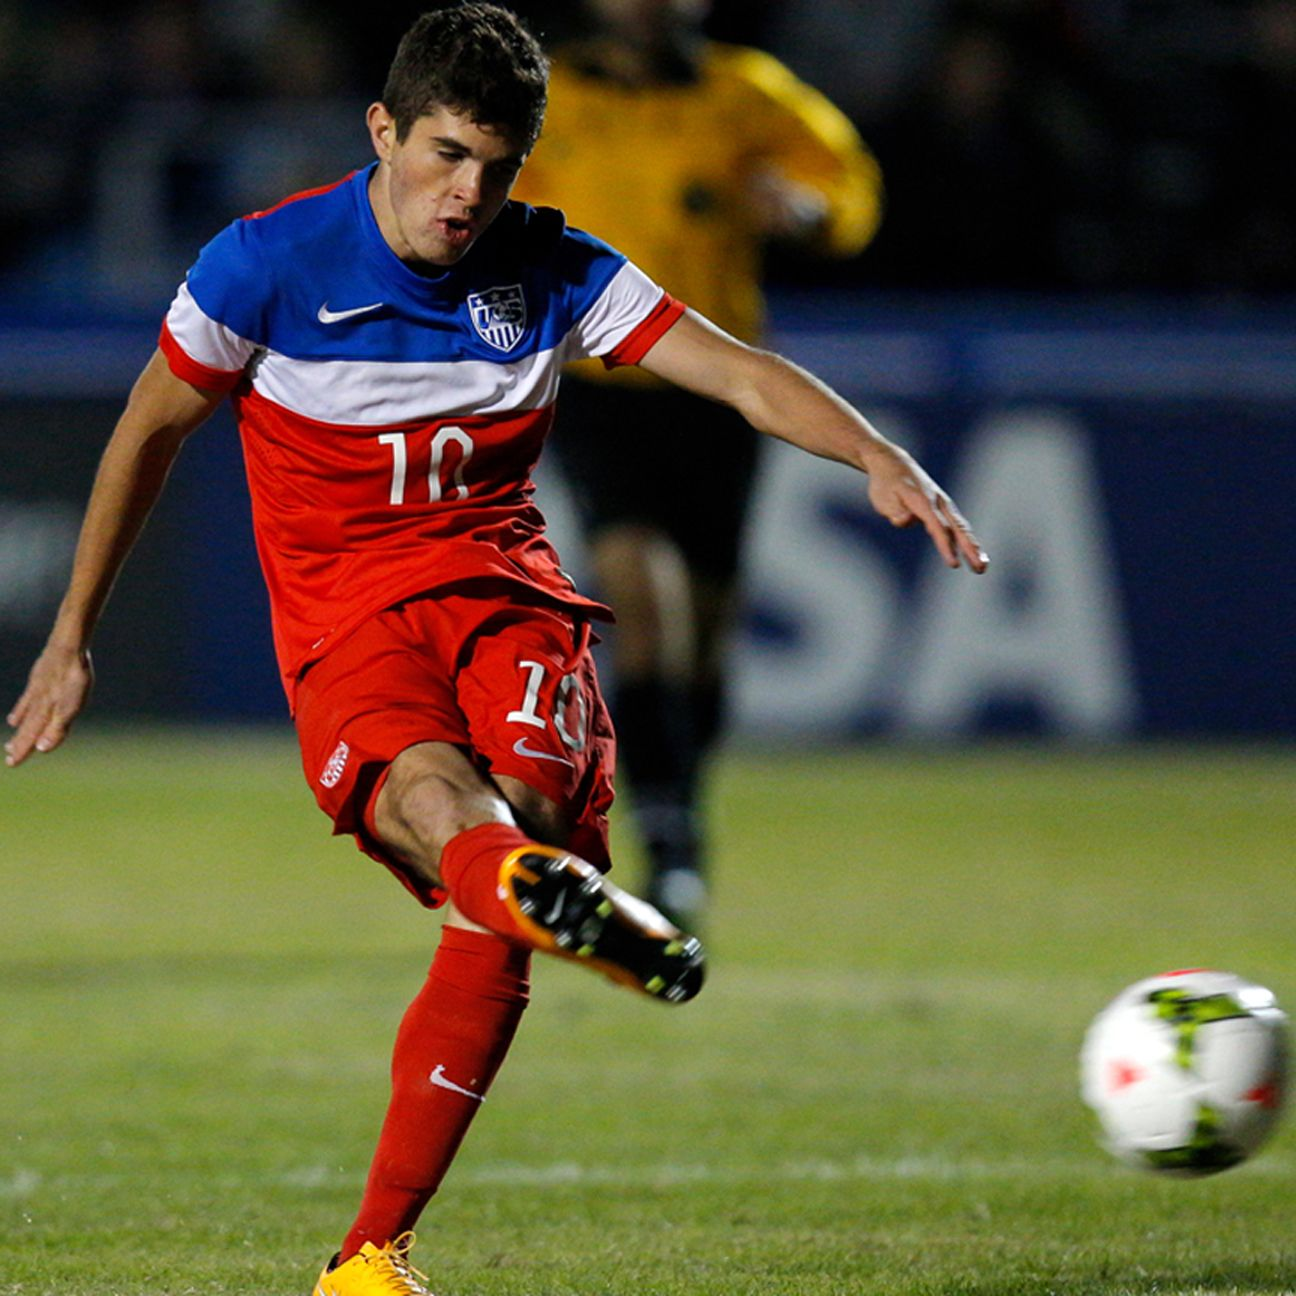 Attacking midfielder Christian Pulisic is one of the Yanks' key offensive weapons.